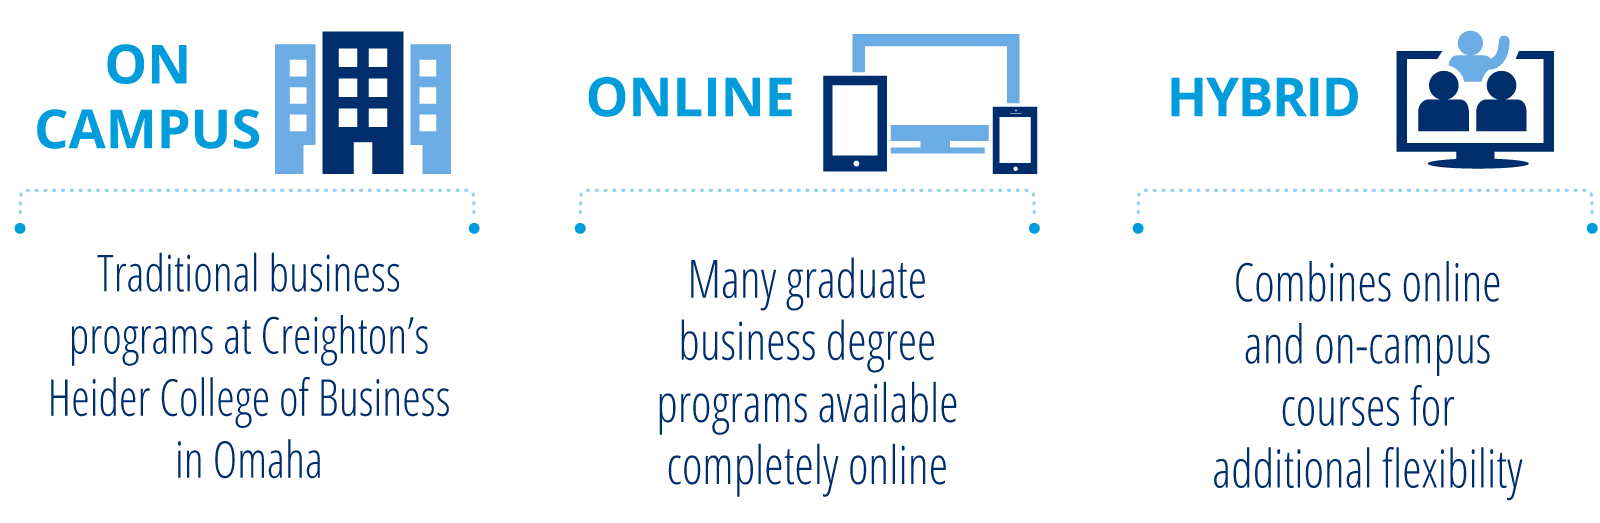 On-campus, Online or Hybrid course options available